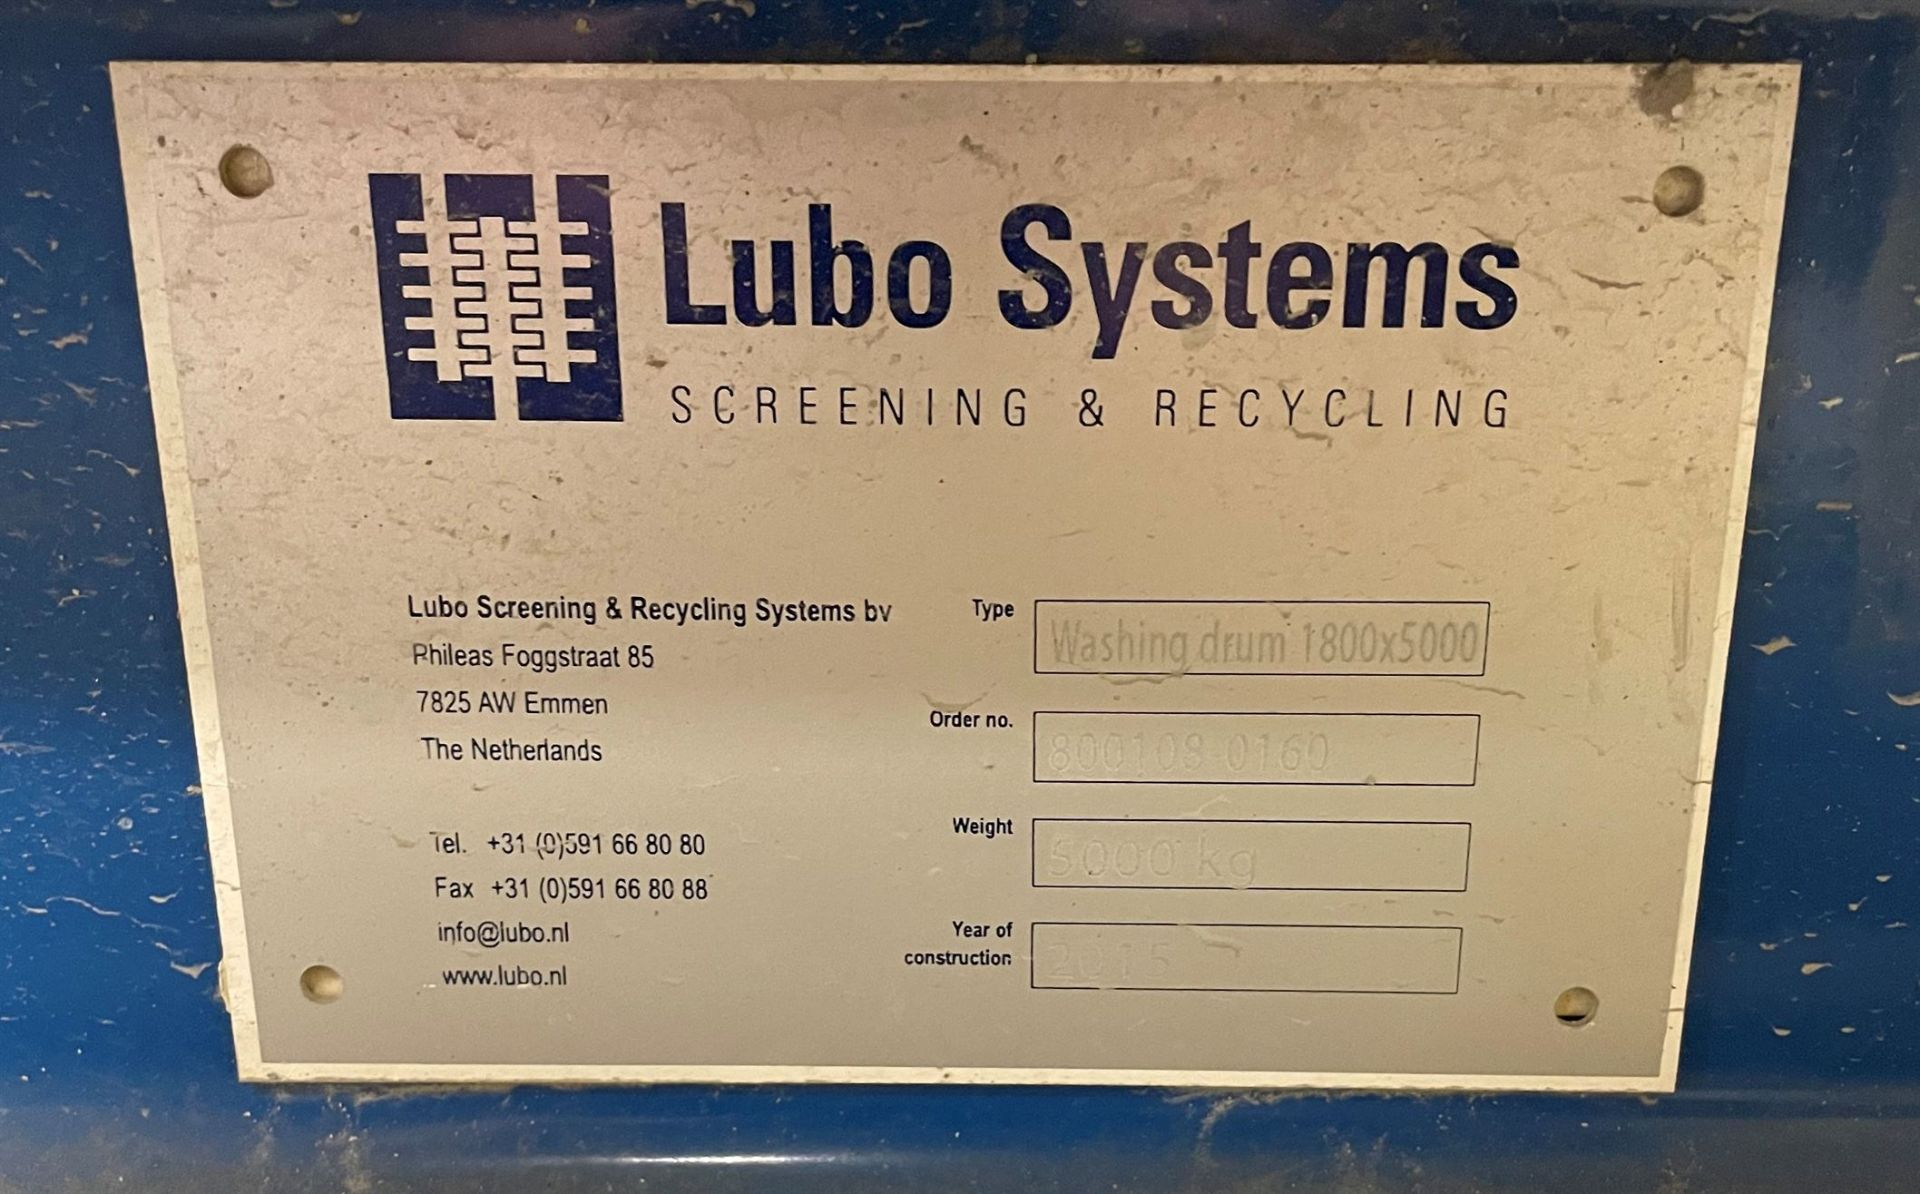 2015 LUBO SYSTEMS WASHING DRUM 1800x5000 Rotary Washing Drum, s/n 800108-0160, 1.8 m Drum - Image 6 of 6